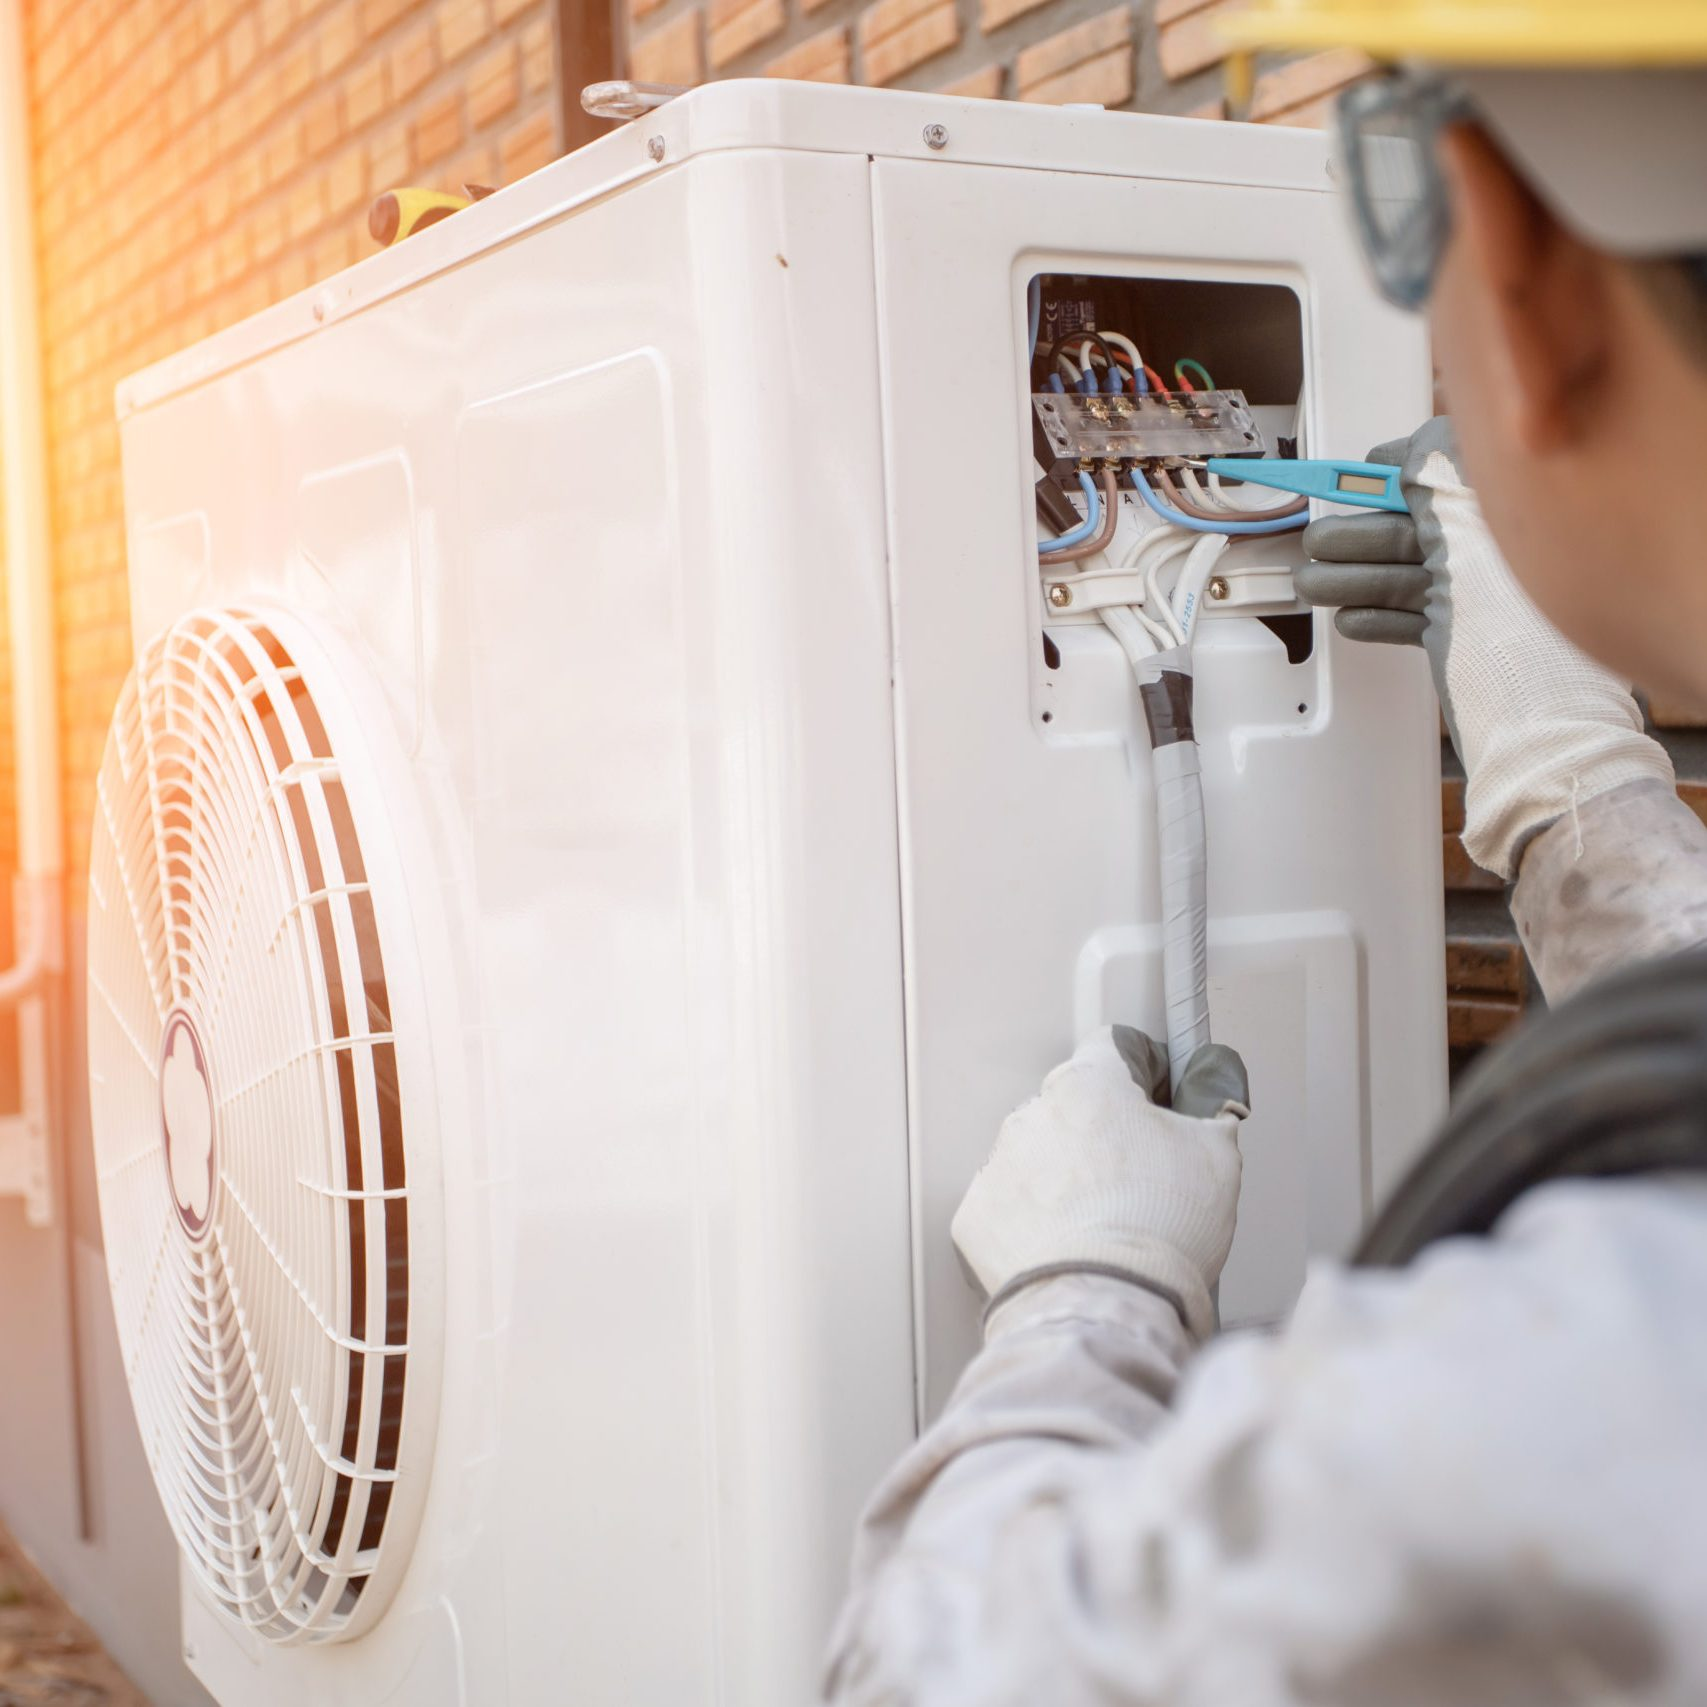 Air Conditioning Technician and A part of preparing to install new air conditioner. Technician vacuum pump evacuates and checking new air conditioner